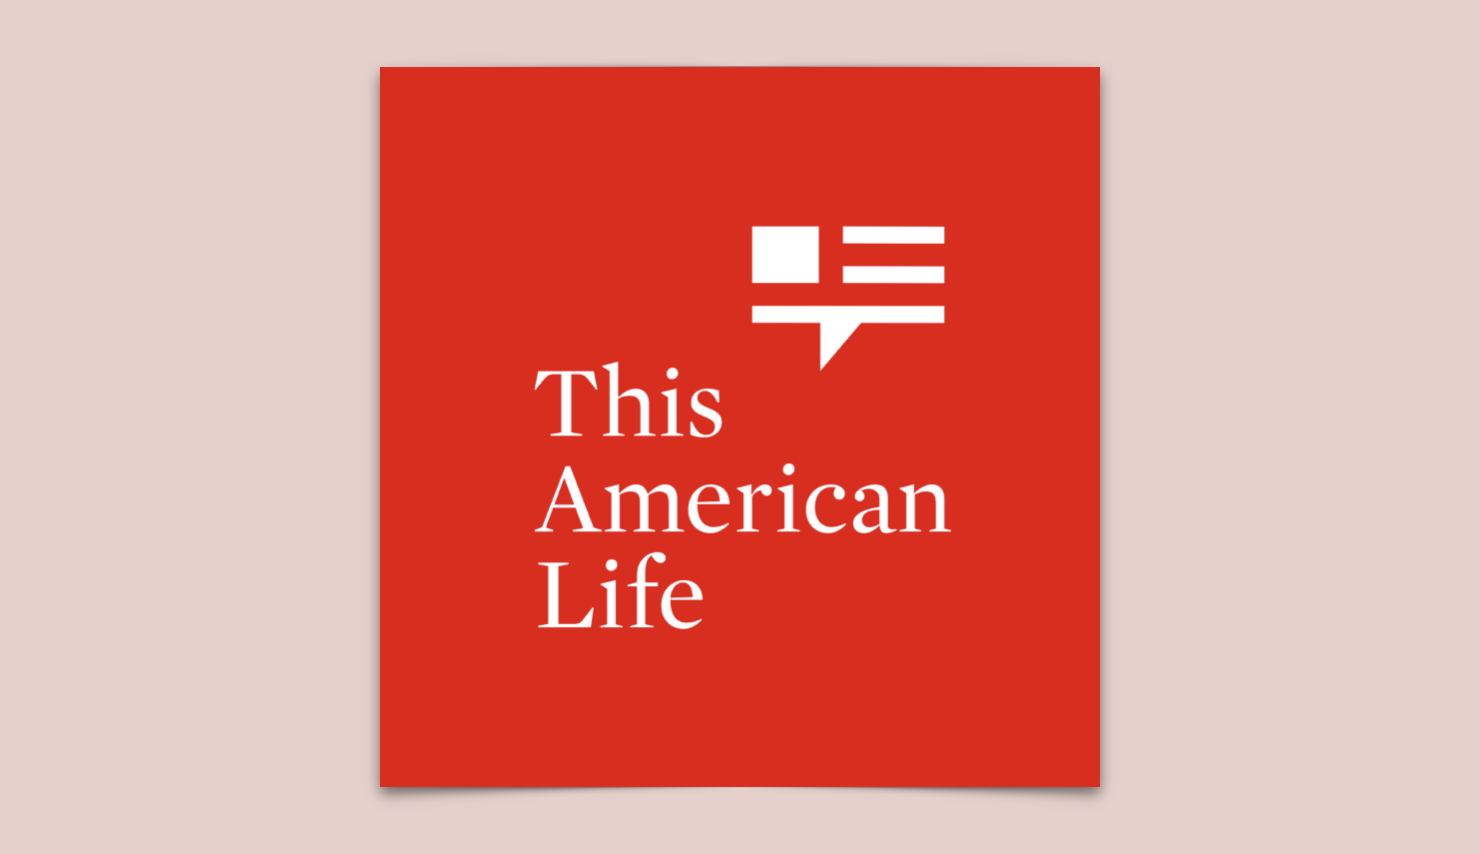 Best Episodes of This American Life